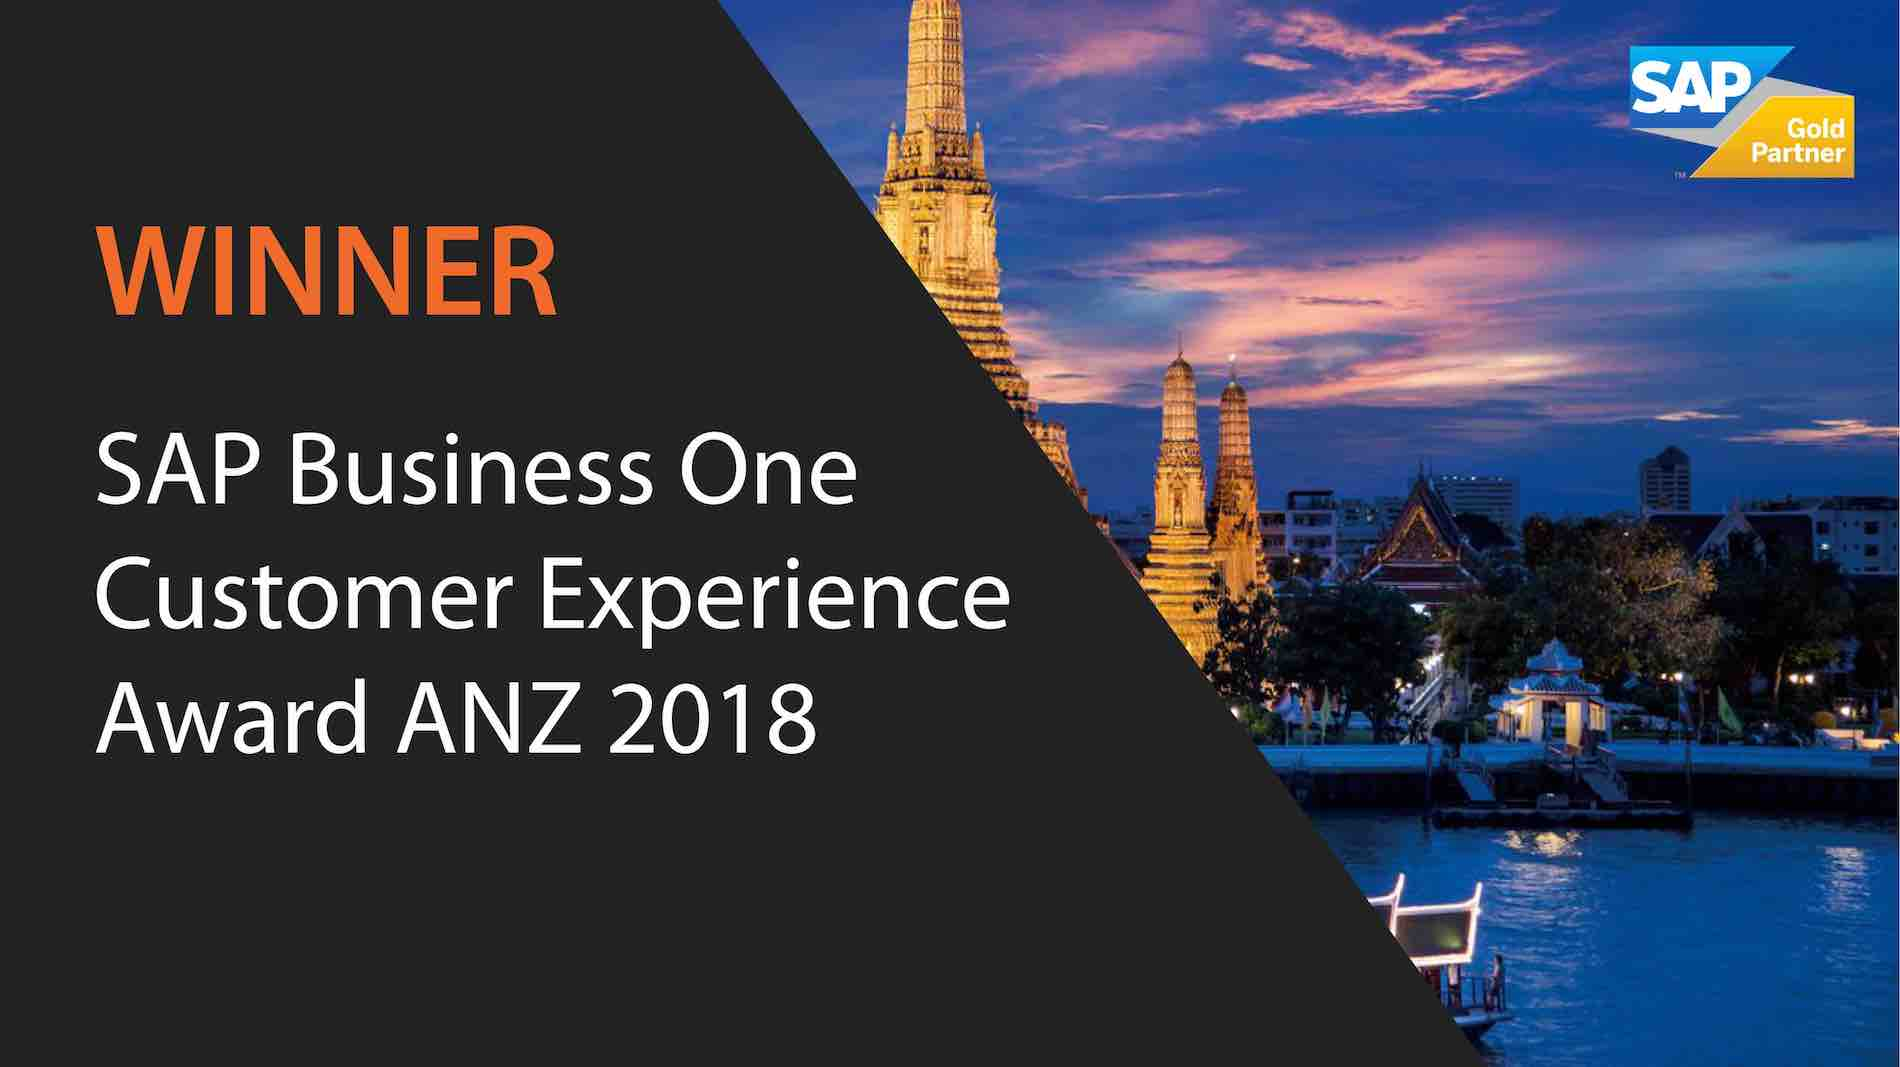 2018 ANZ SAP Business One Customer Experience Award